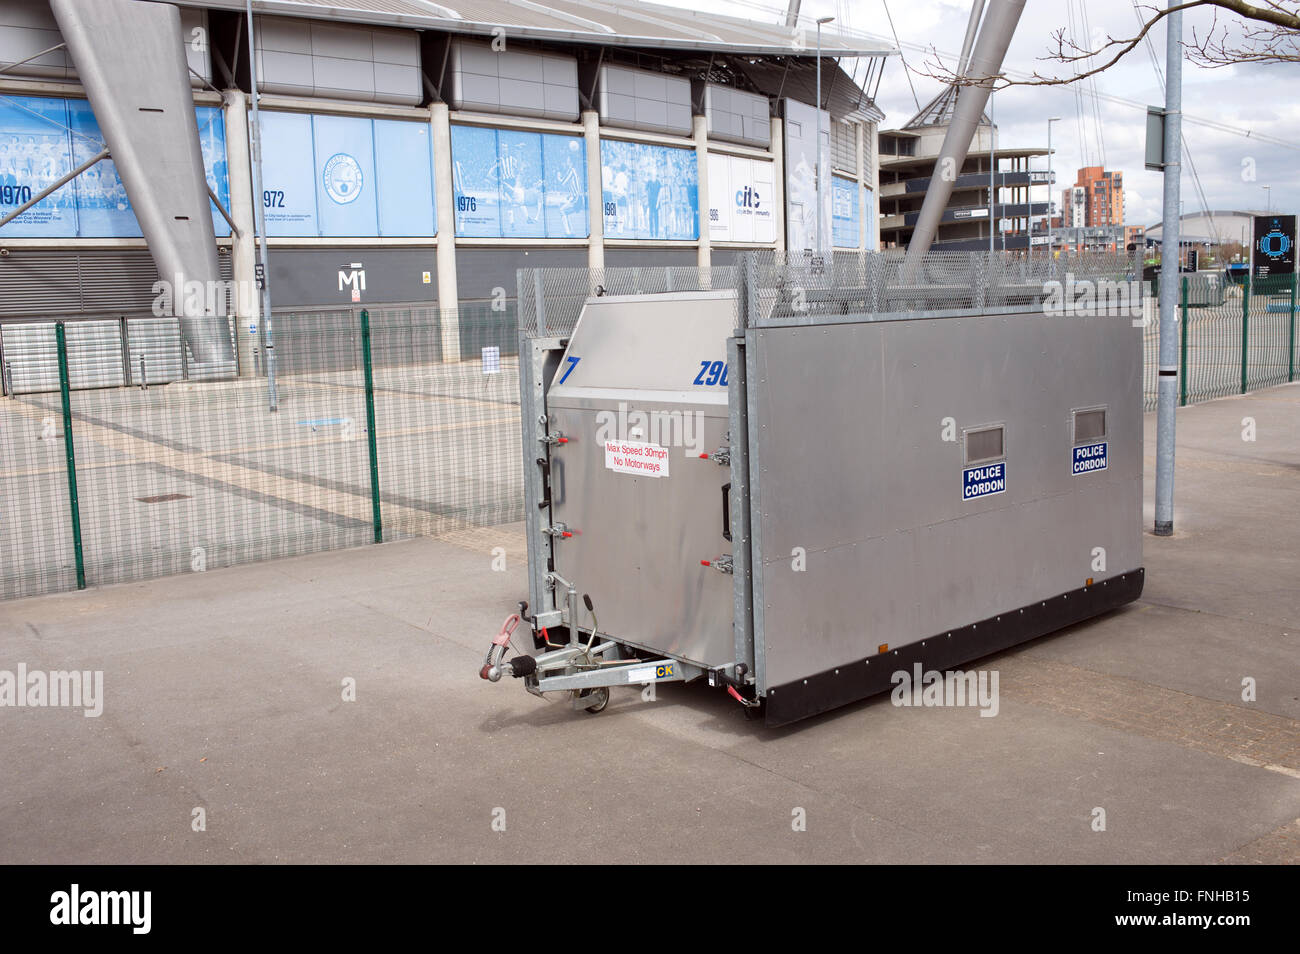 Police portable steel cordons, closed outside a UK football ground. 200 of them were purchased by the Home Office - Stock Image